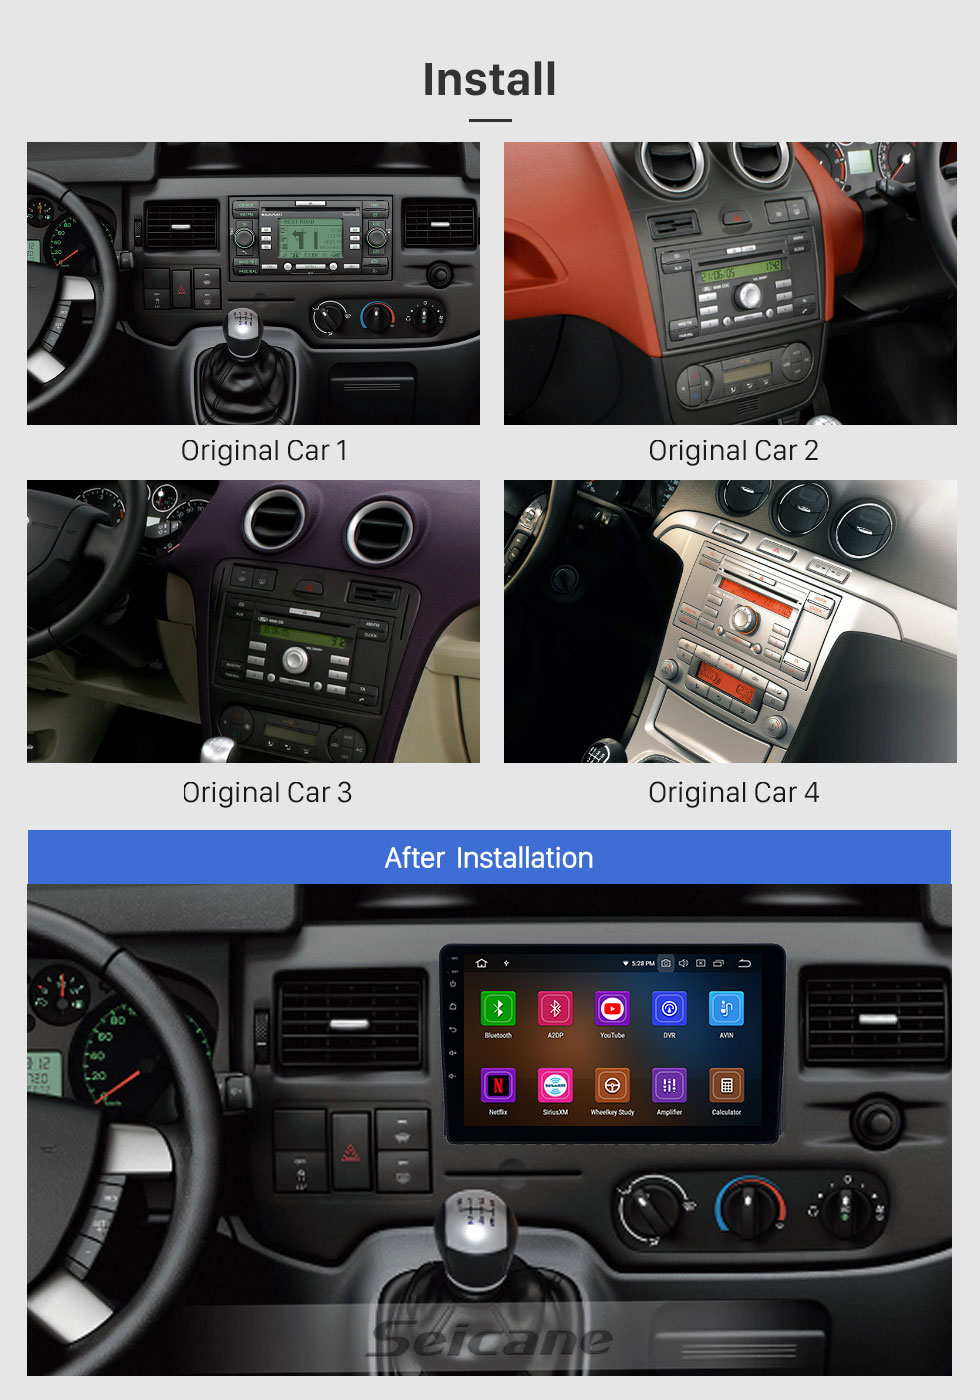 Seicane HD Touchscreen 2005-2008 Ford Focus Android 10.0 9 inch GPS Navigation Radio Bluetooth AUX Carplay support Rear camera DAB+ OBD2